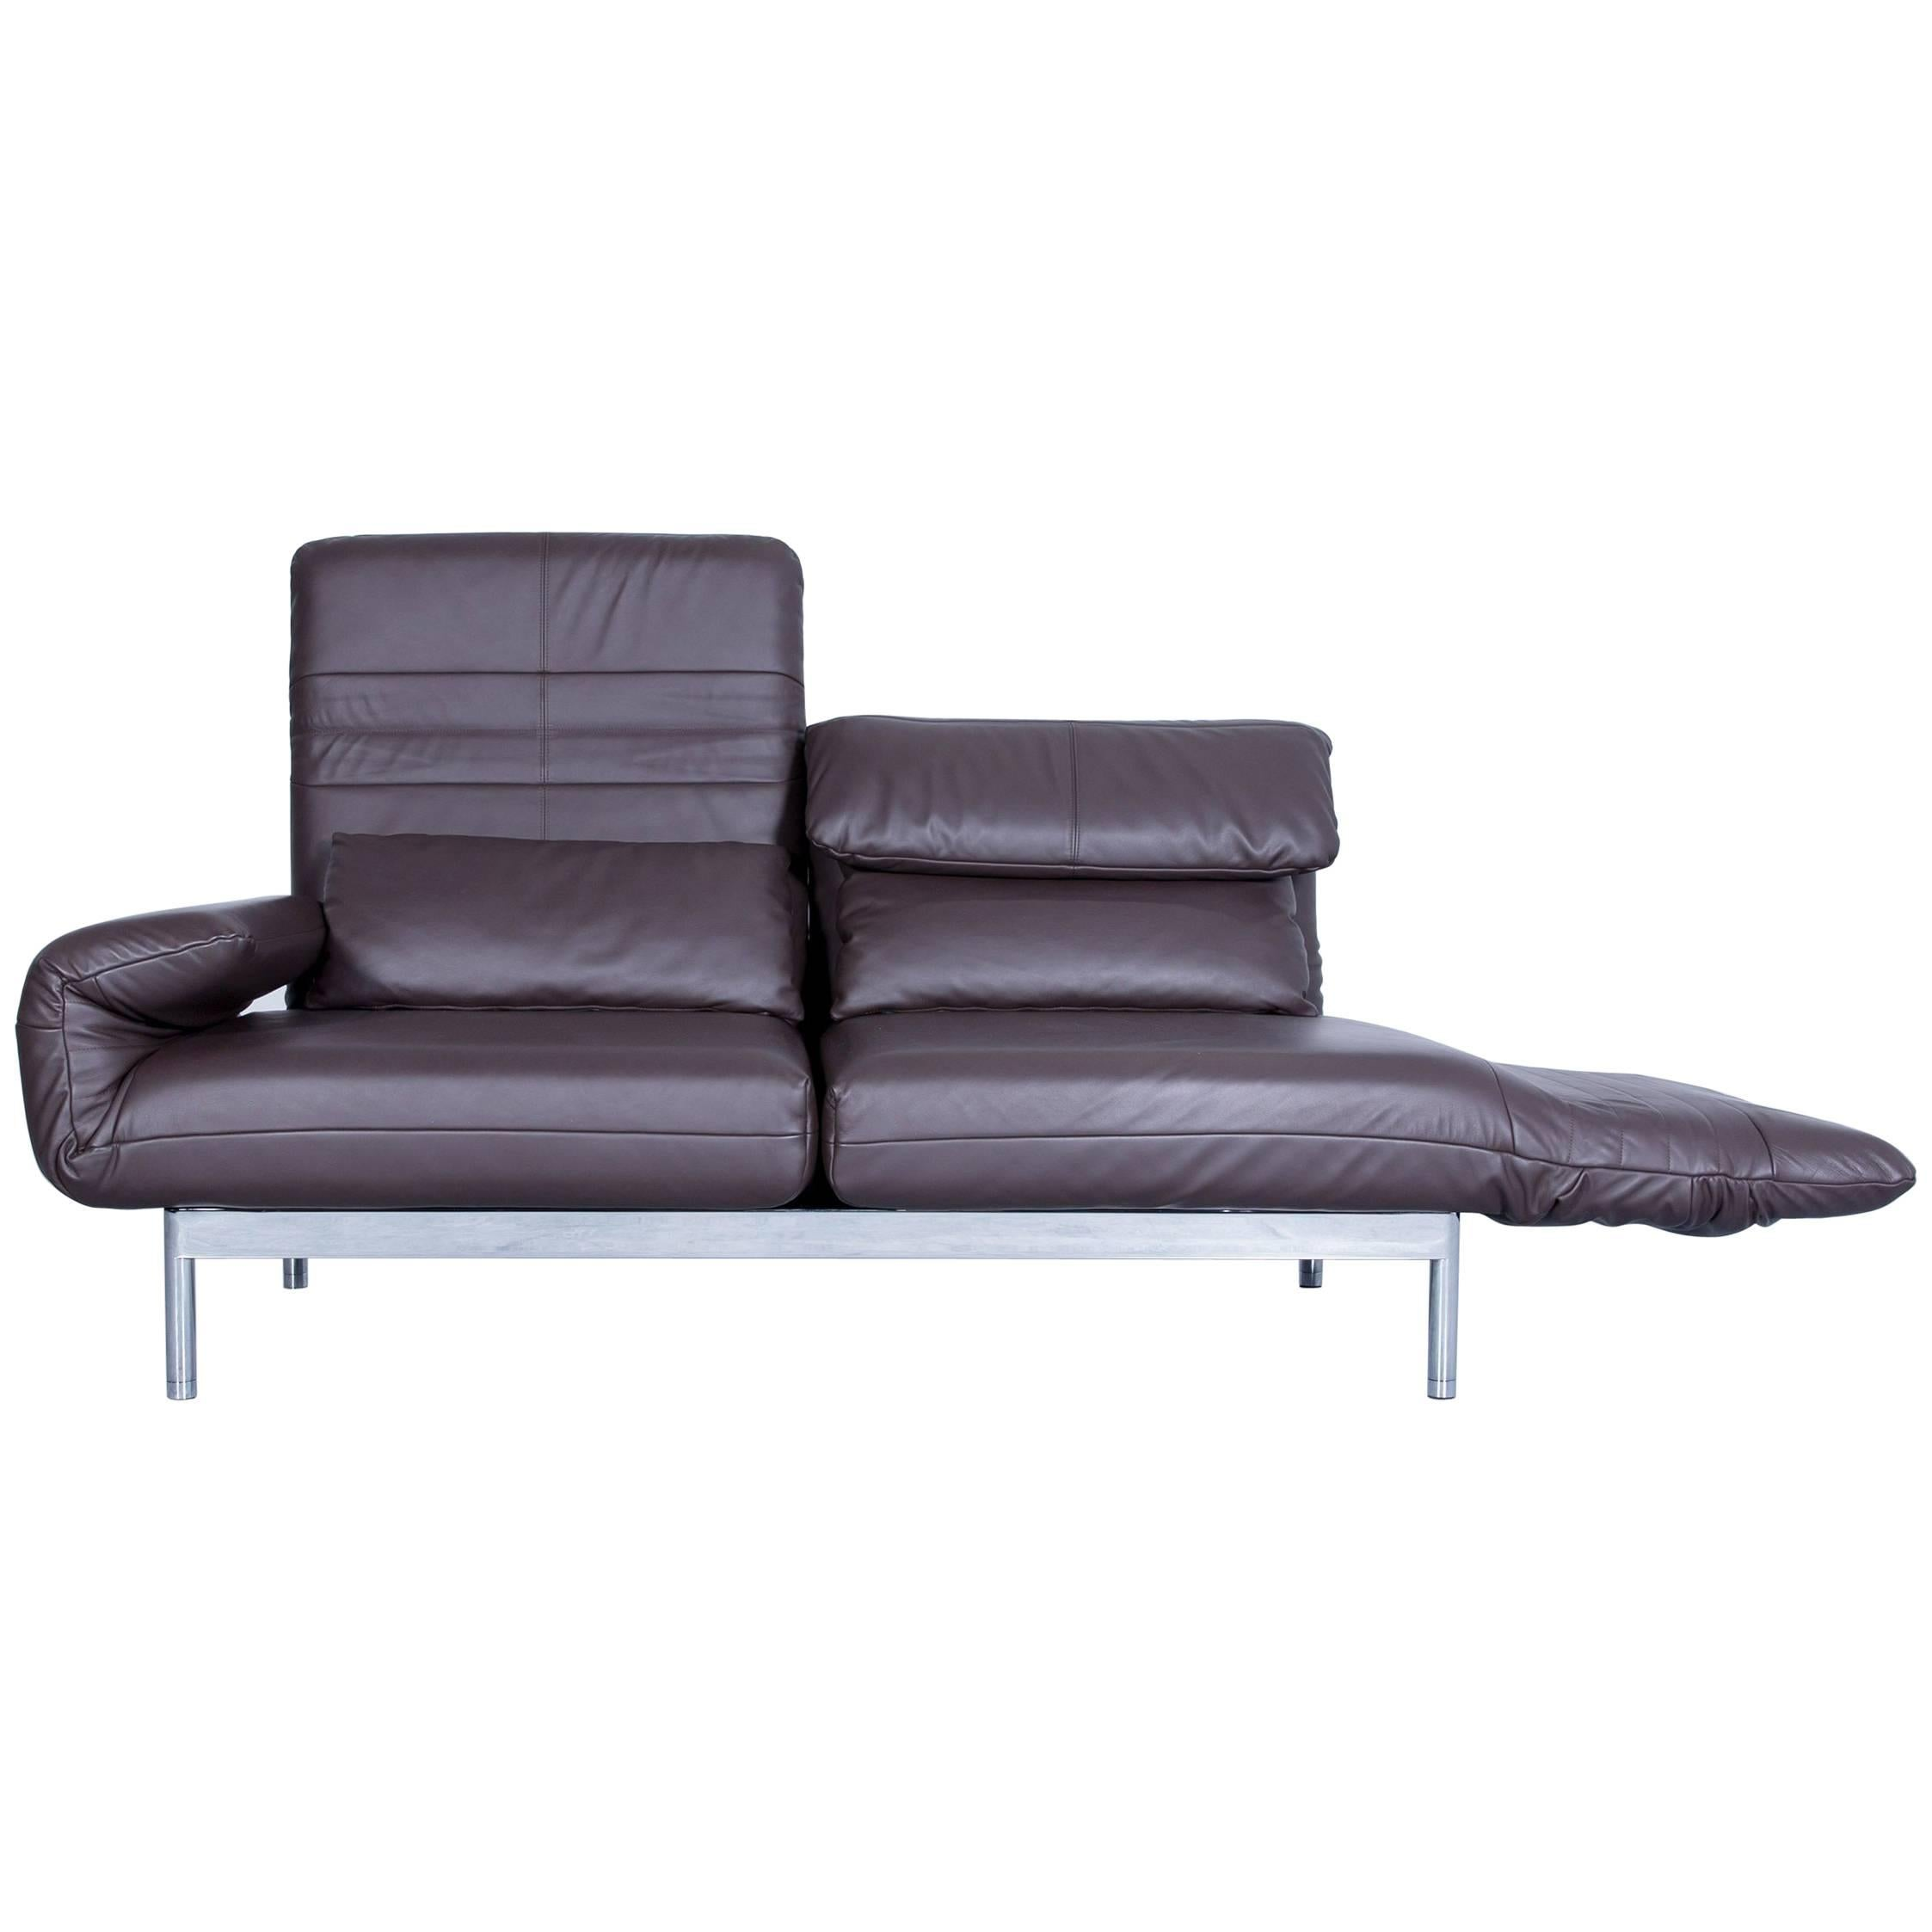 Rolf Benz Sofa Ebay Rolf Benz Vida Affordable Corner Sofa Leather Mio By Norbert Beck